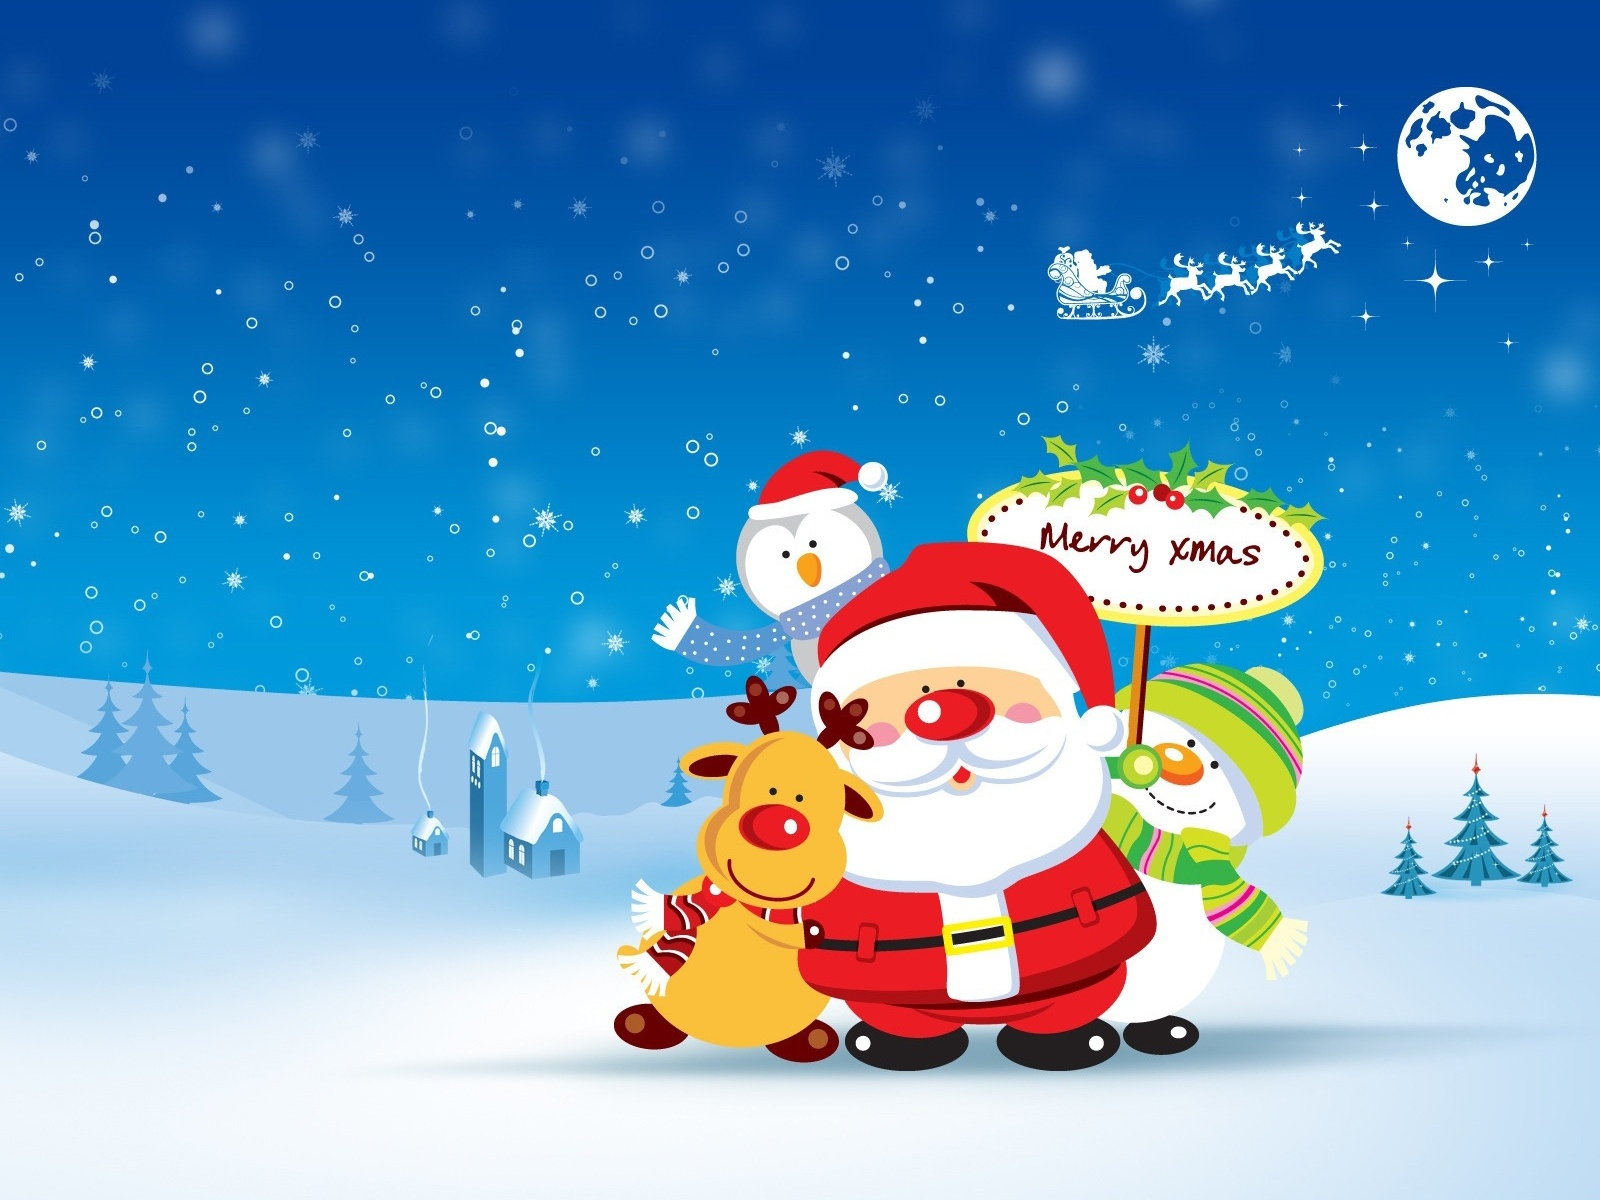 Cute Merry Christmas Wallpaper   HD Wallpapers 1600x1200